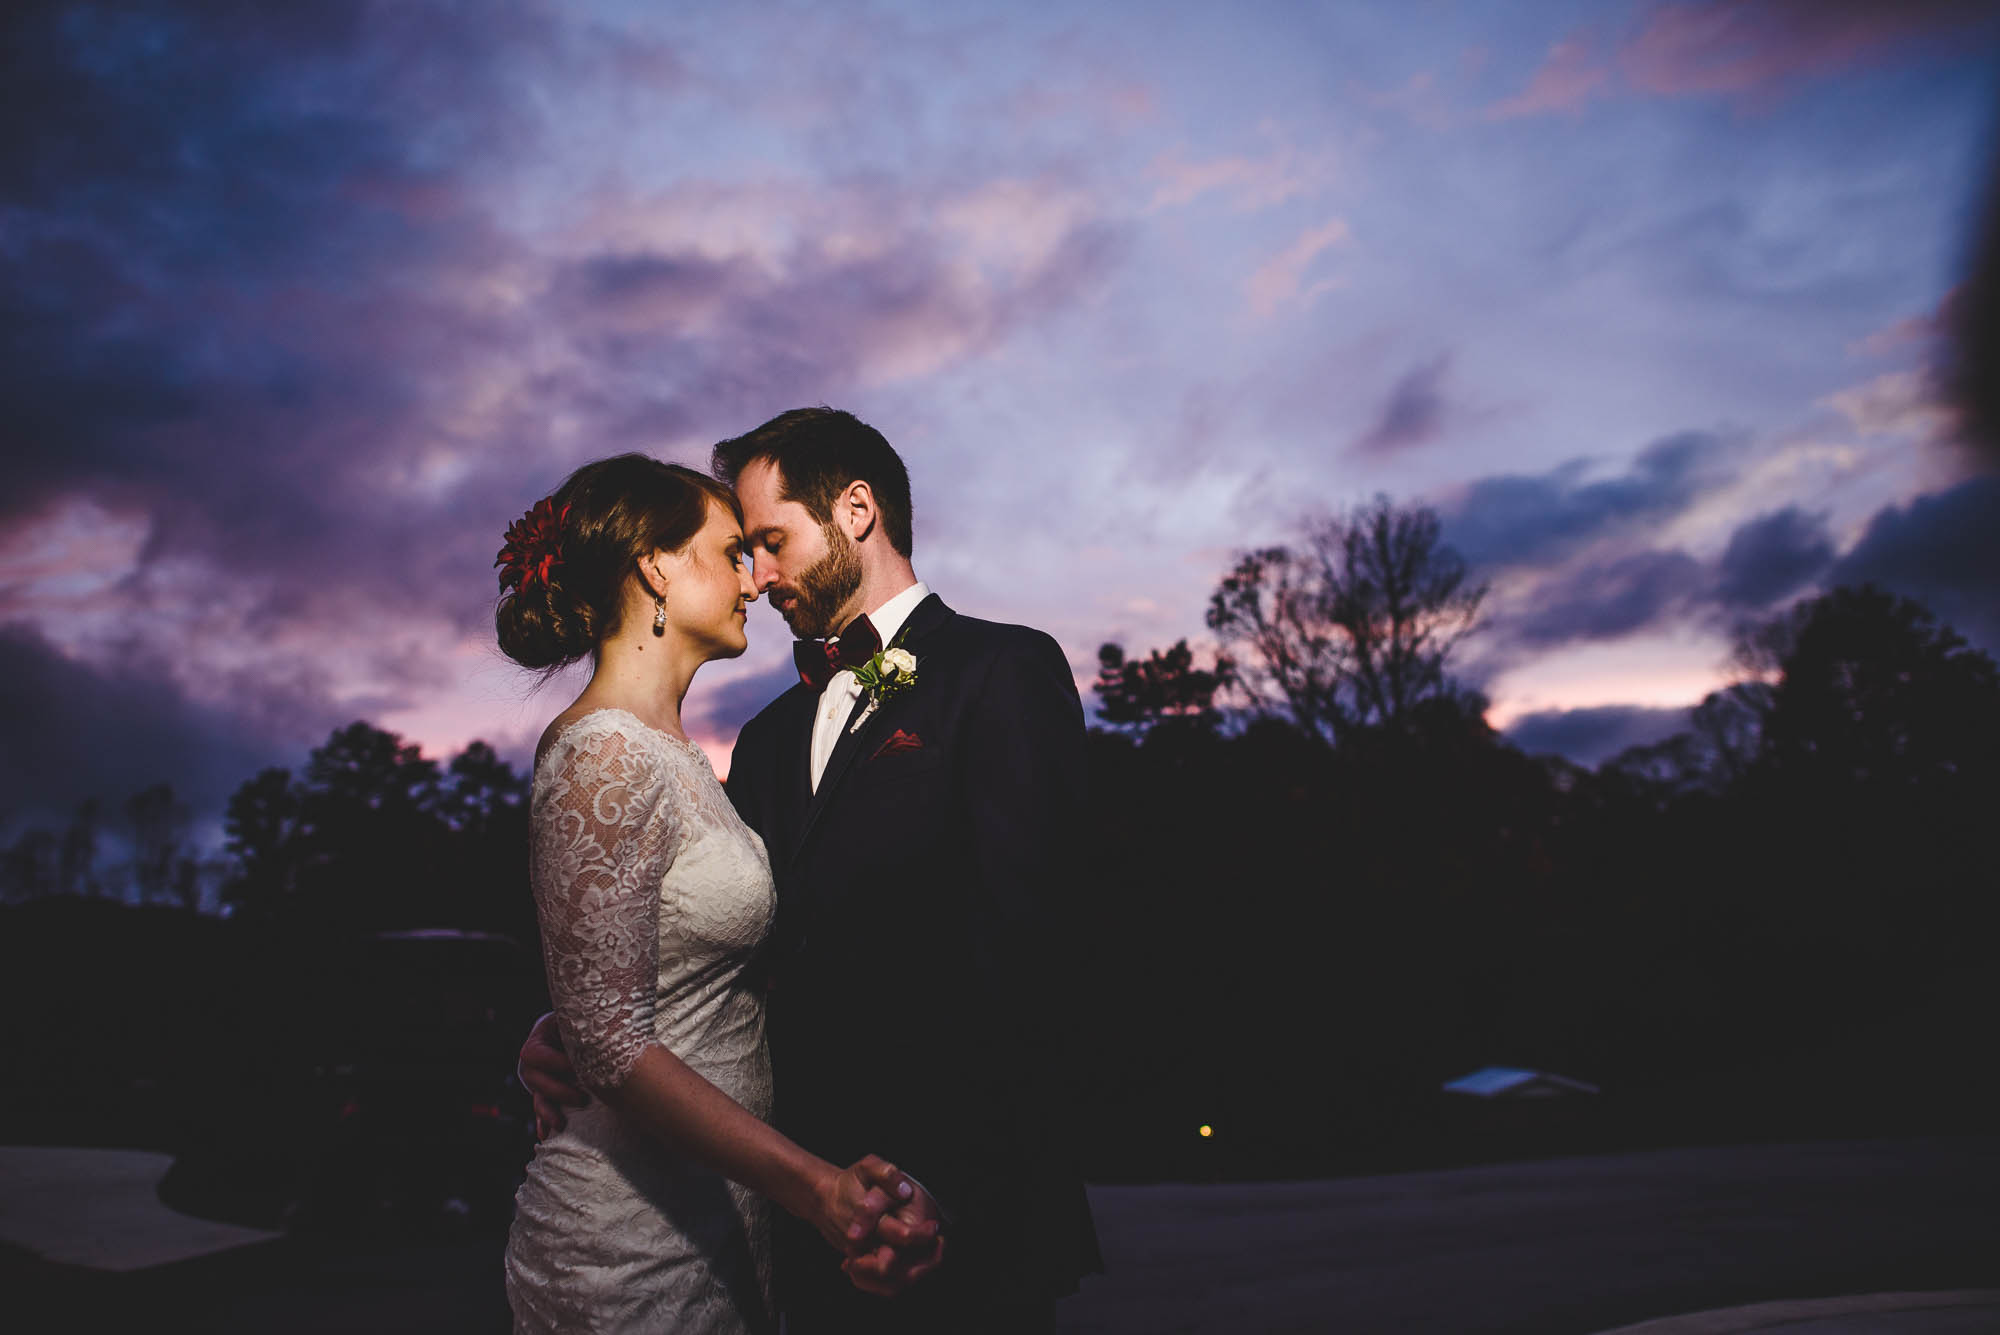 Waynesville, NC weddings